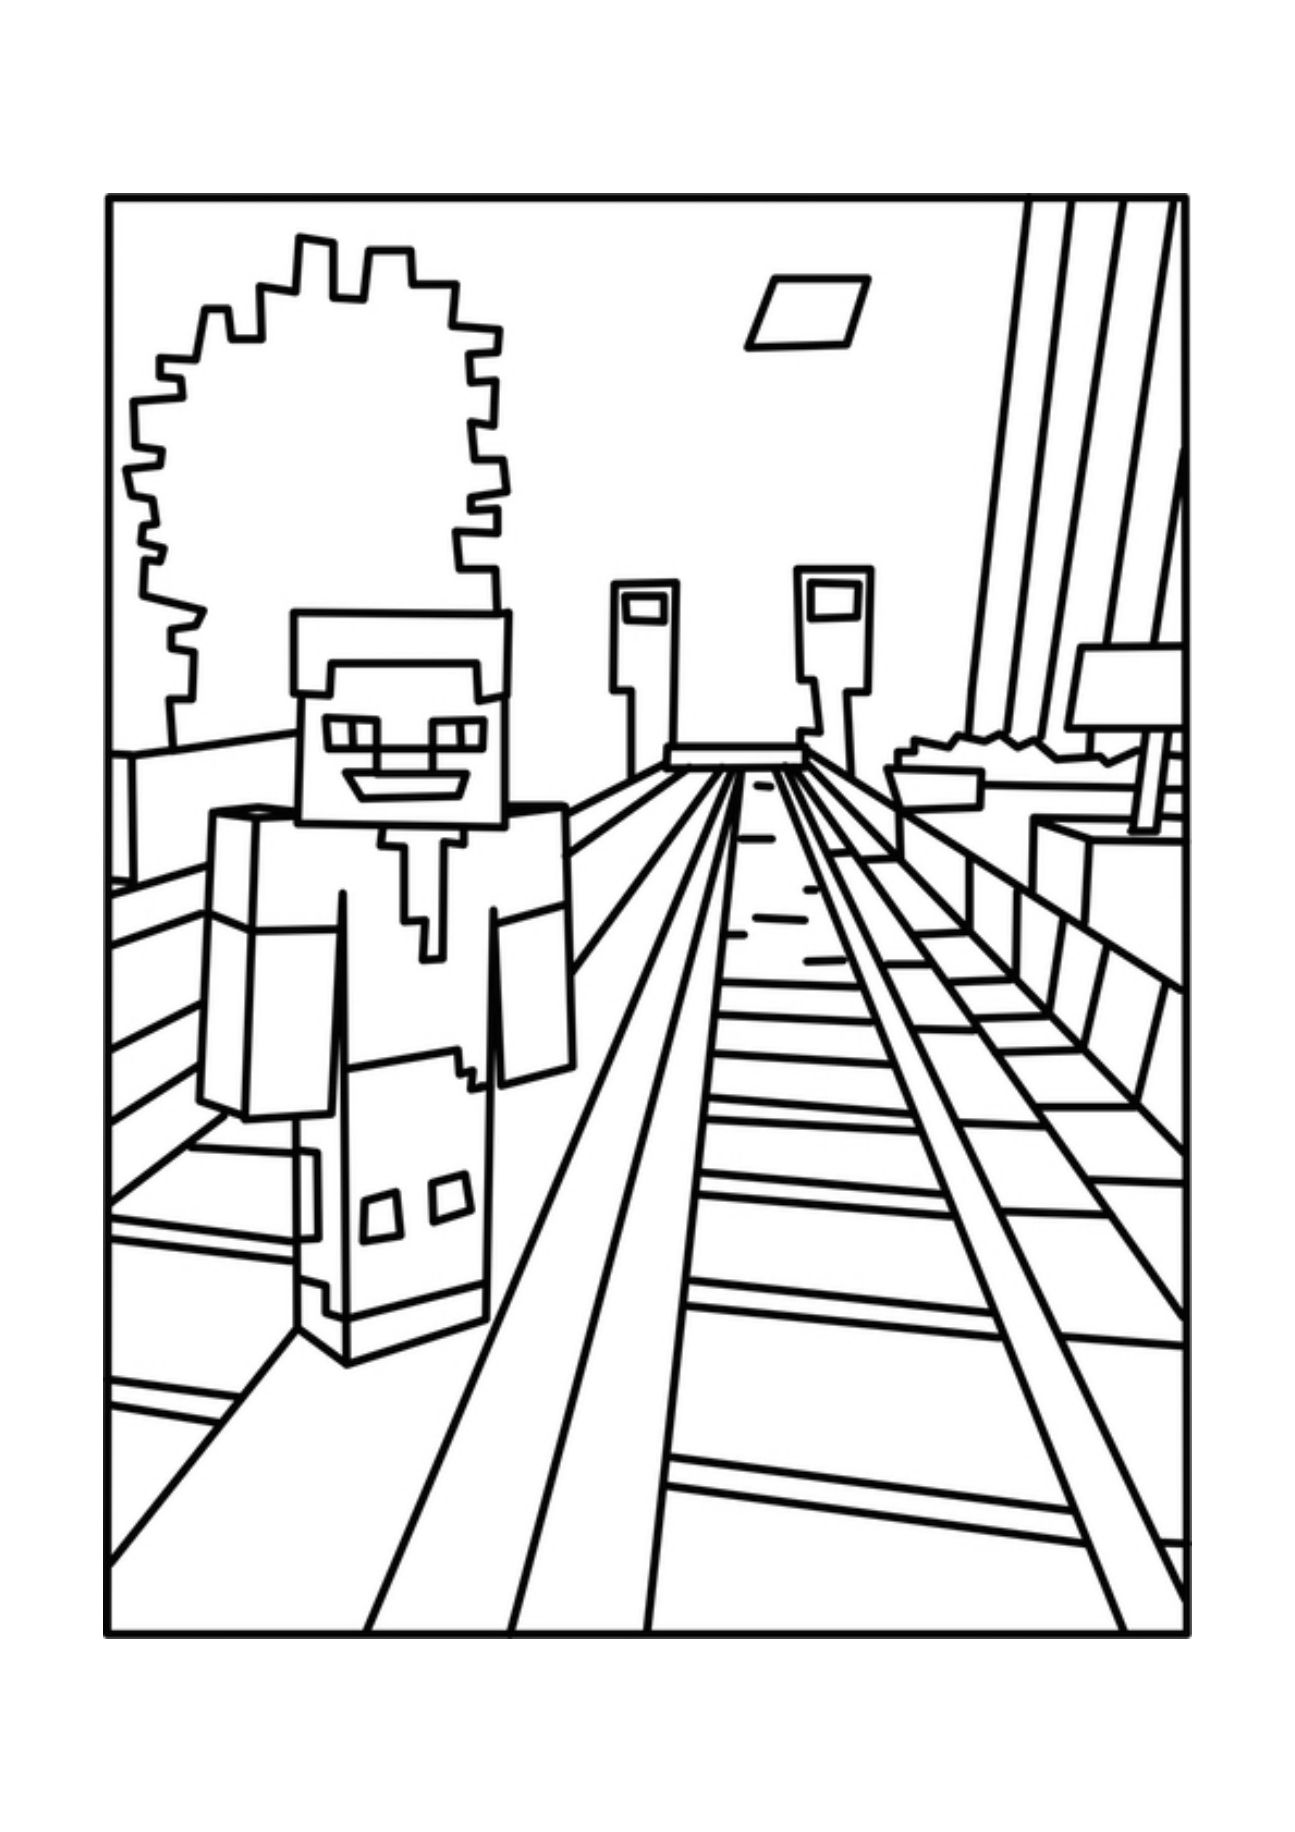 minecraft coloring page minecraft for kids minecraft kids coloring pages page coloring minecraft